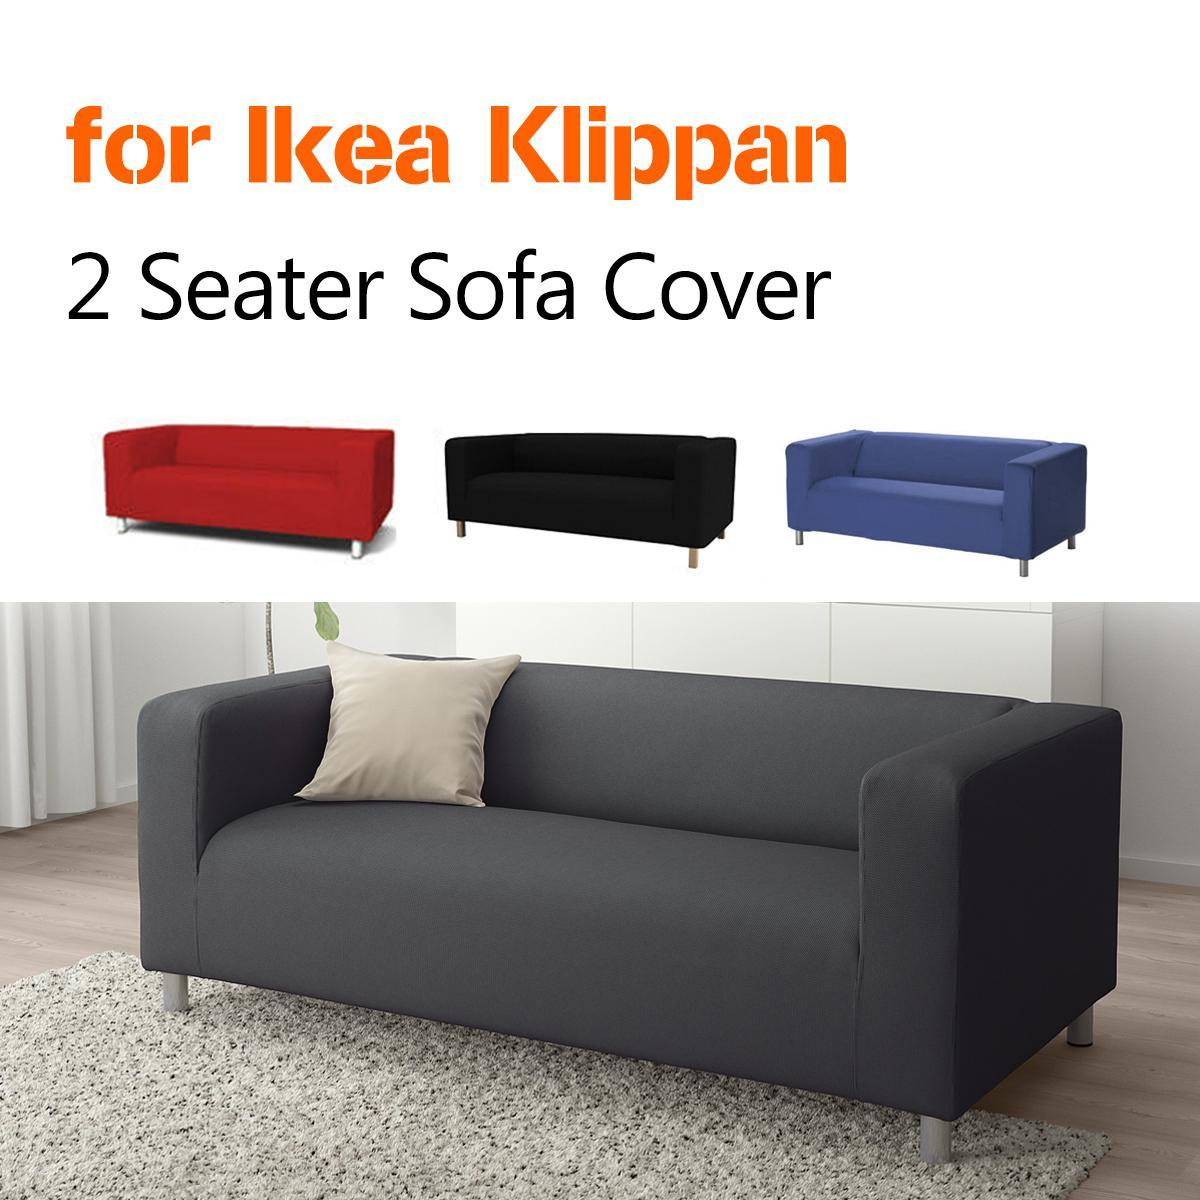 Custom Cover Slipcover to fit IKEA KLIPPAN 2 Seater Sofa Settee Replacement